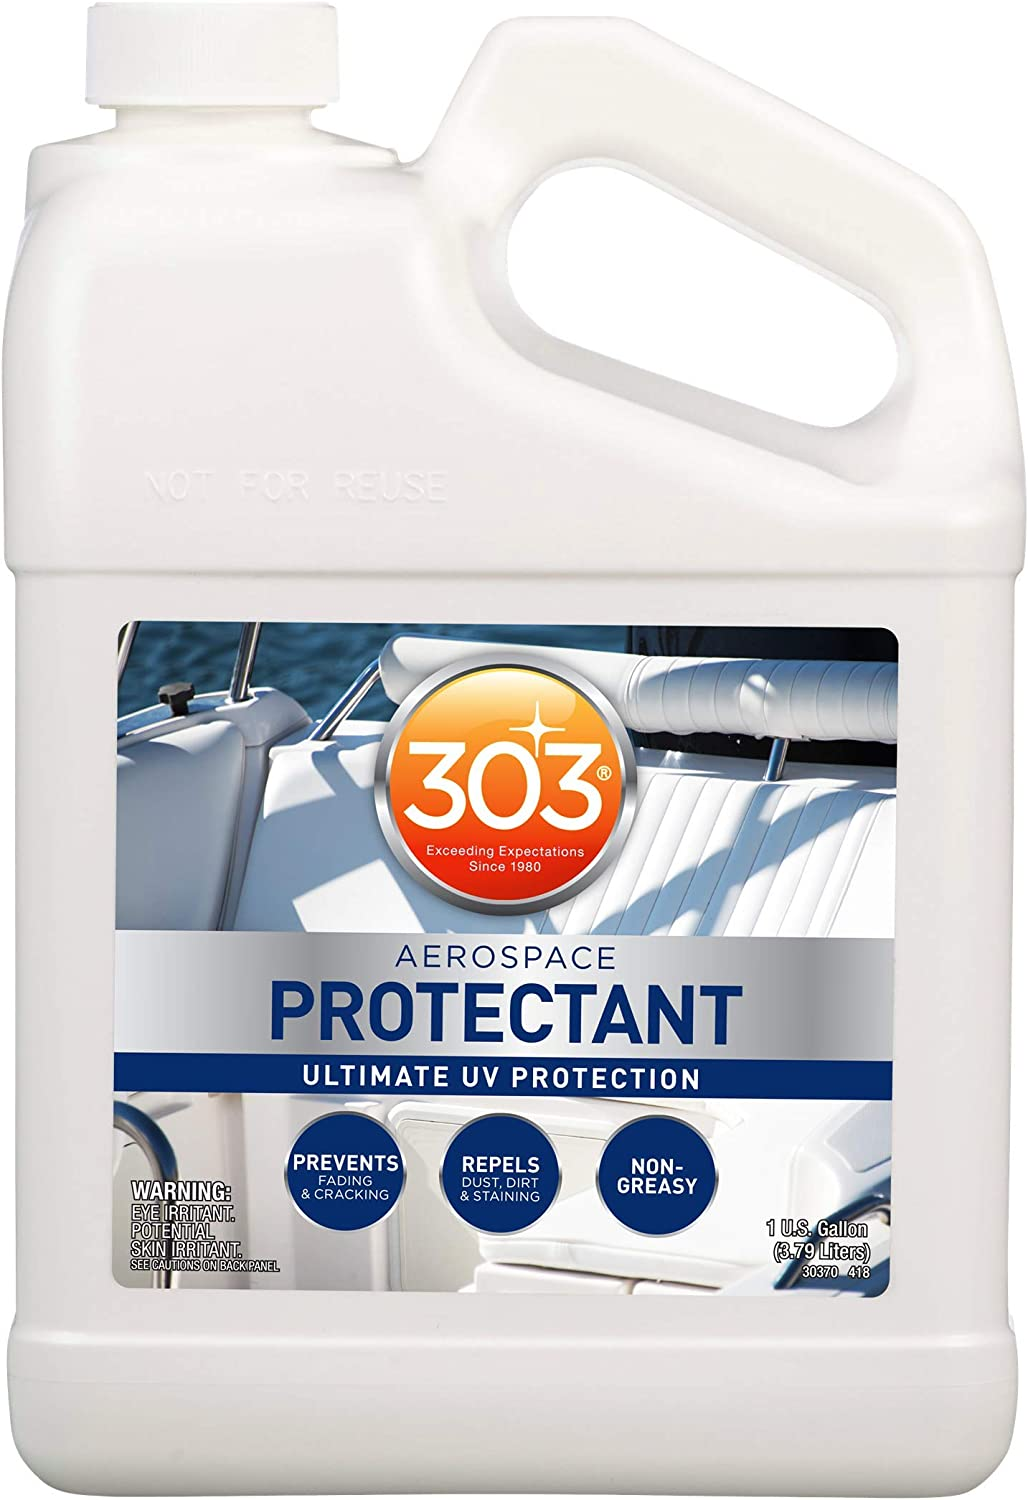 303 (30370) Products Marine Aerospace Ultimate UV Protection-Keeps Vinyl, Rubber, and Plastic Looking New, Longer, 1 Gallon, 1. Fluid_Ounces